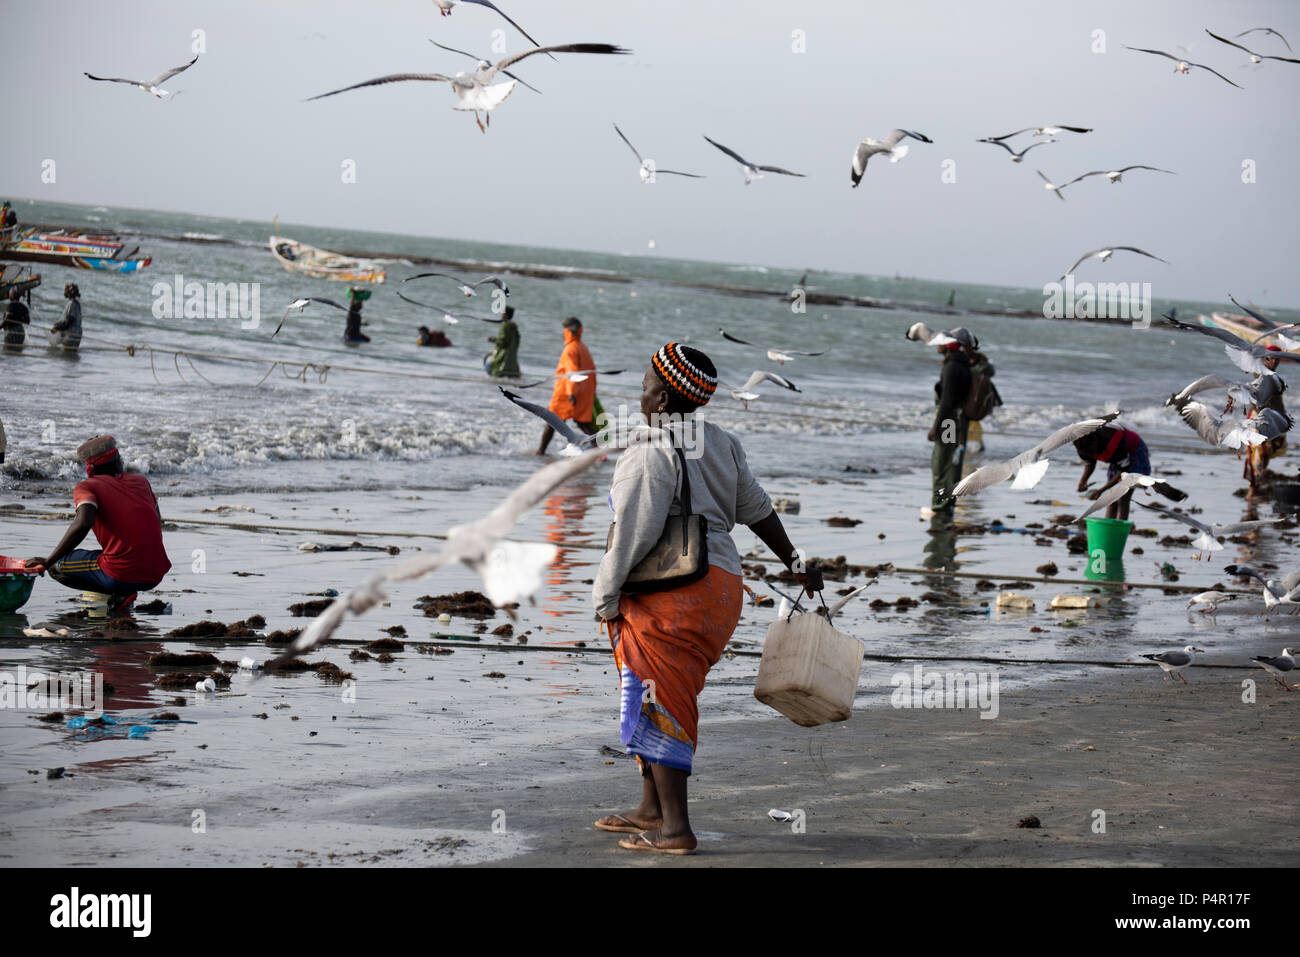 A woman is carrying a bucket to discard seafood residues to feed grey-headed gulls flying overhead at the Tanji beach, The Gambia, West Africa. - Stock Image